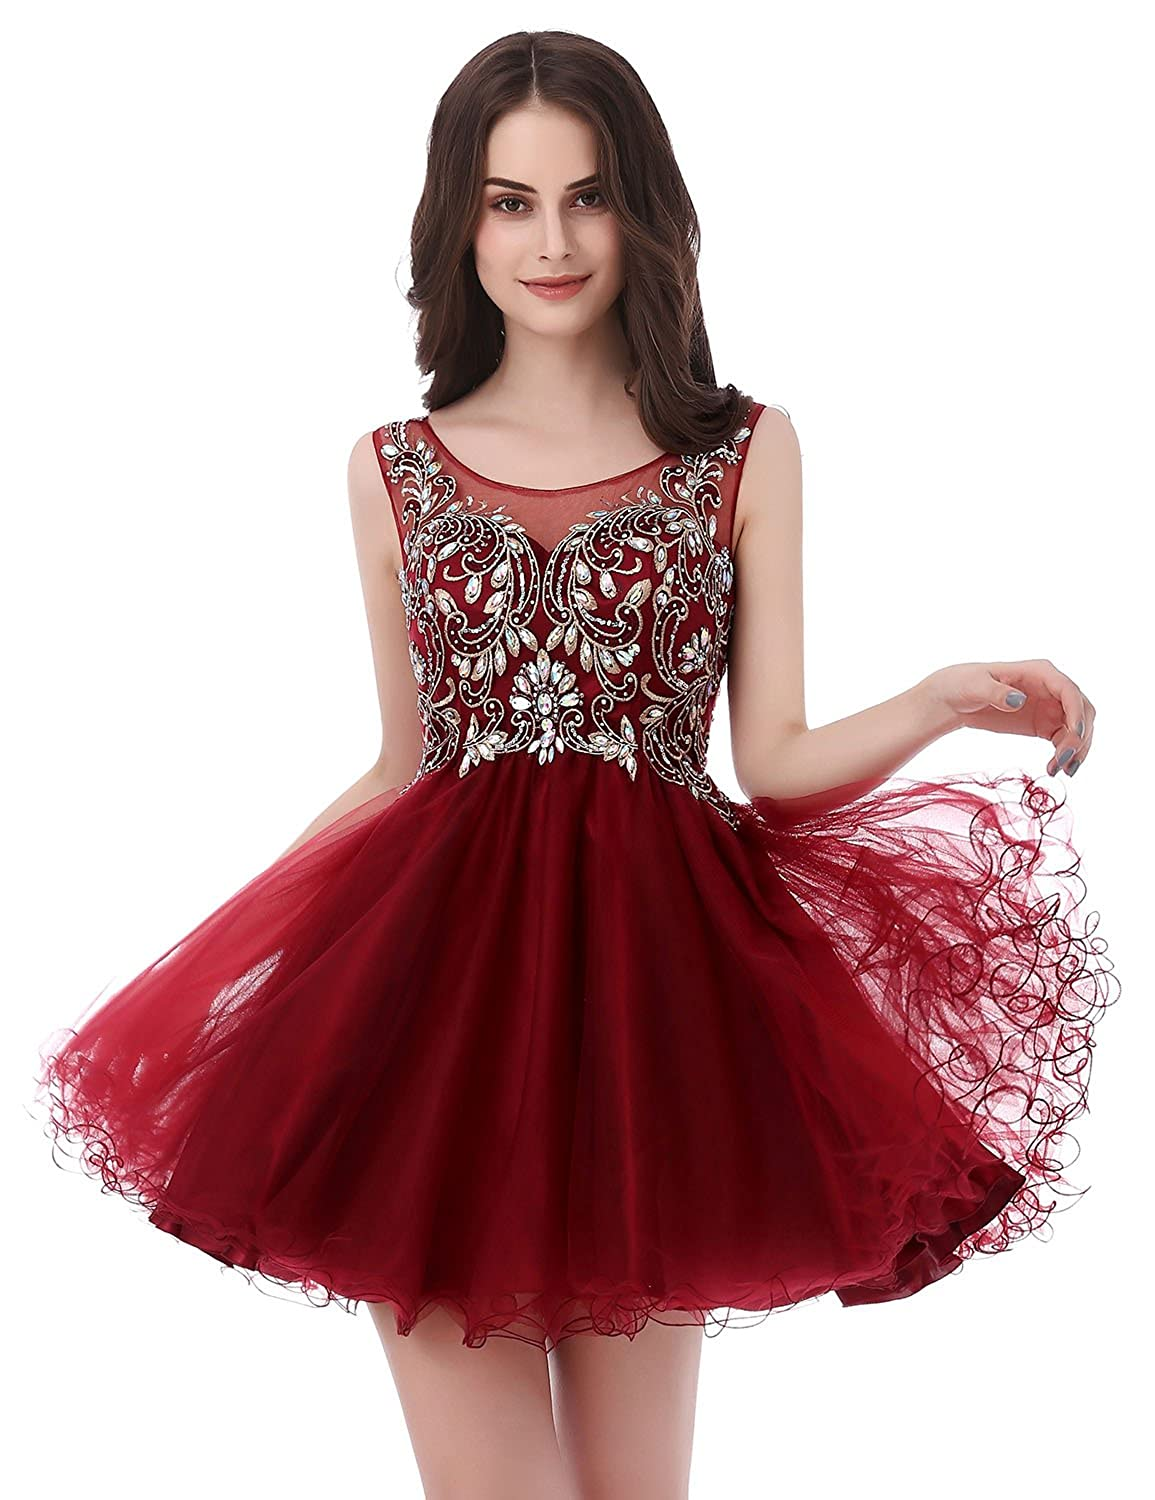 142burgundy Sarahbridal Women's Short Tulle Beading Homecoming Dresses 2019 Prom Party Gowns